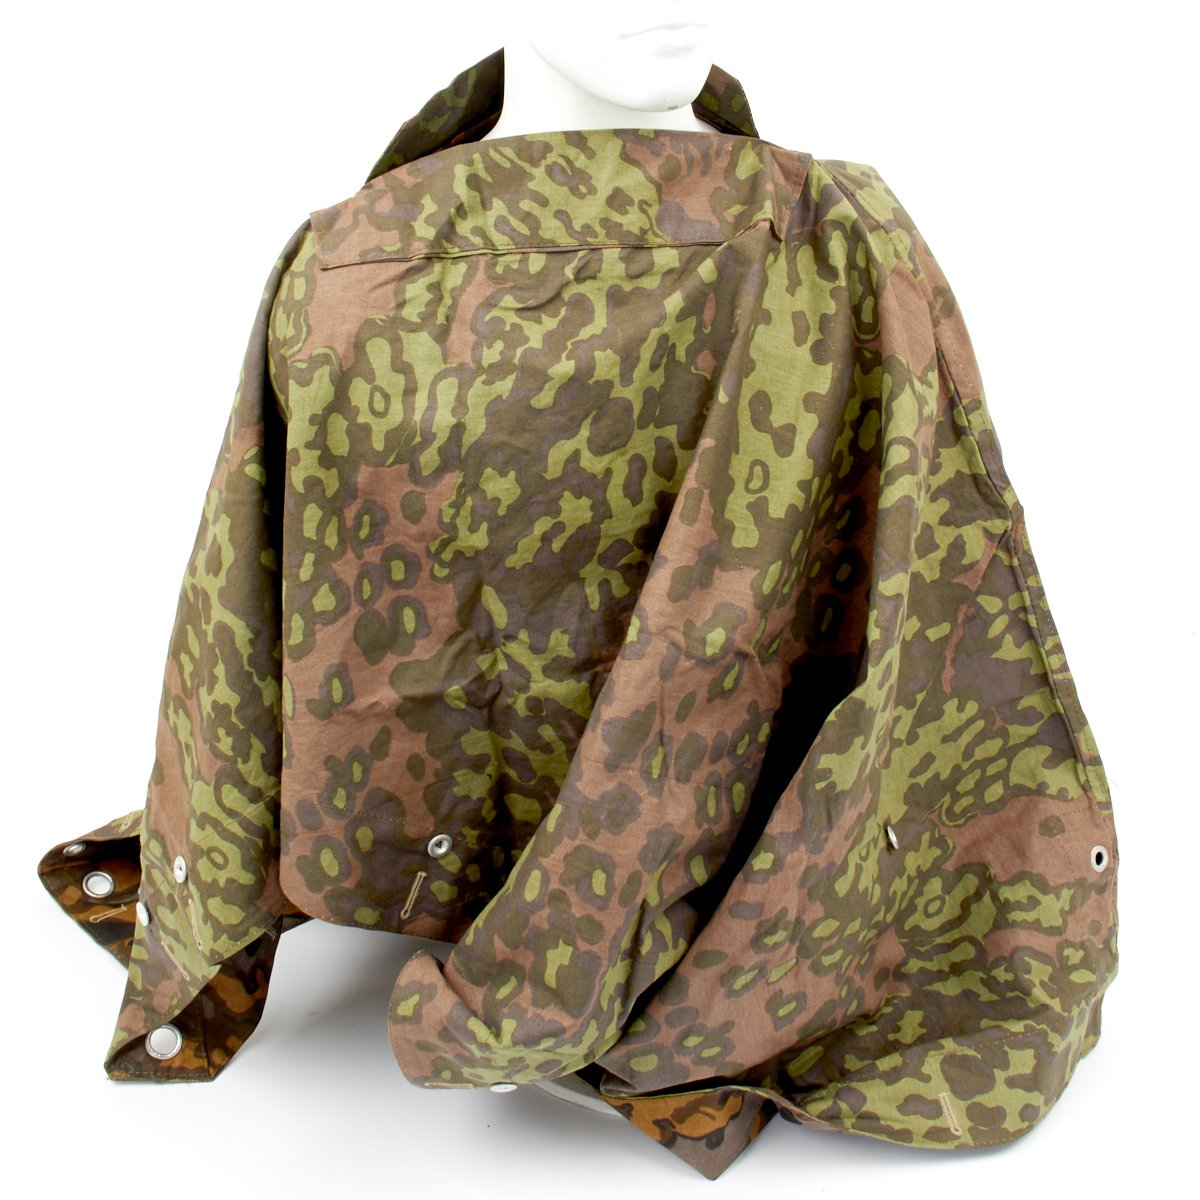 German WWII Tent Quarter u0026 Poncho Zeltbahn Oak Pattern Camouflage Reversible  sc 1 st  International Military Antiques & German WWII Tent Quarter u0026 Poncho Zeltbahn Oak Pattern Camouflage ...